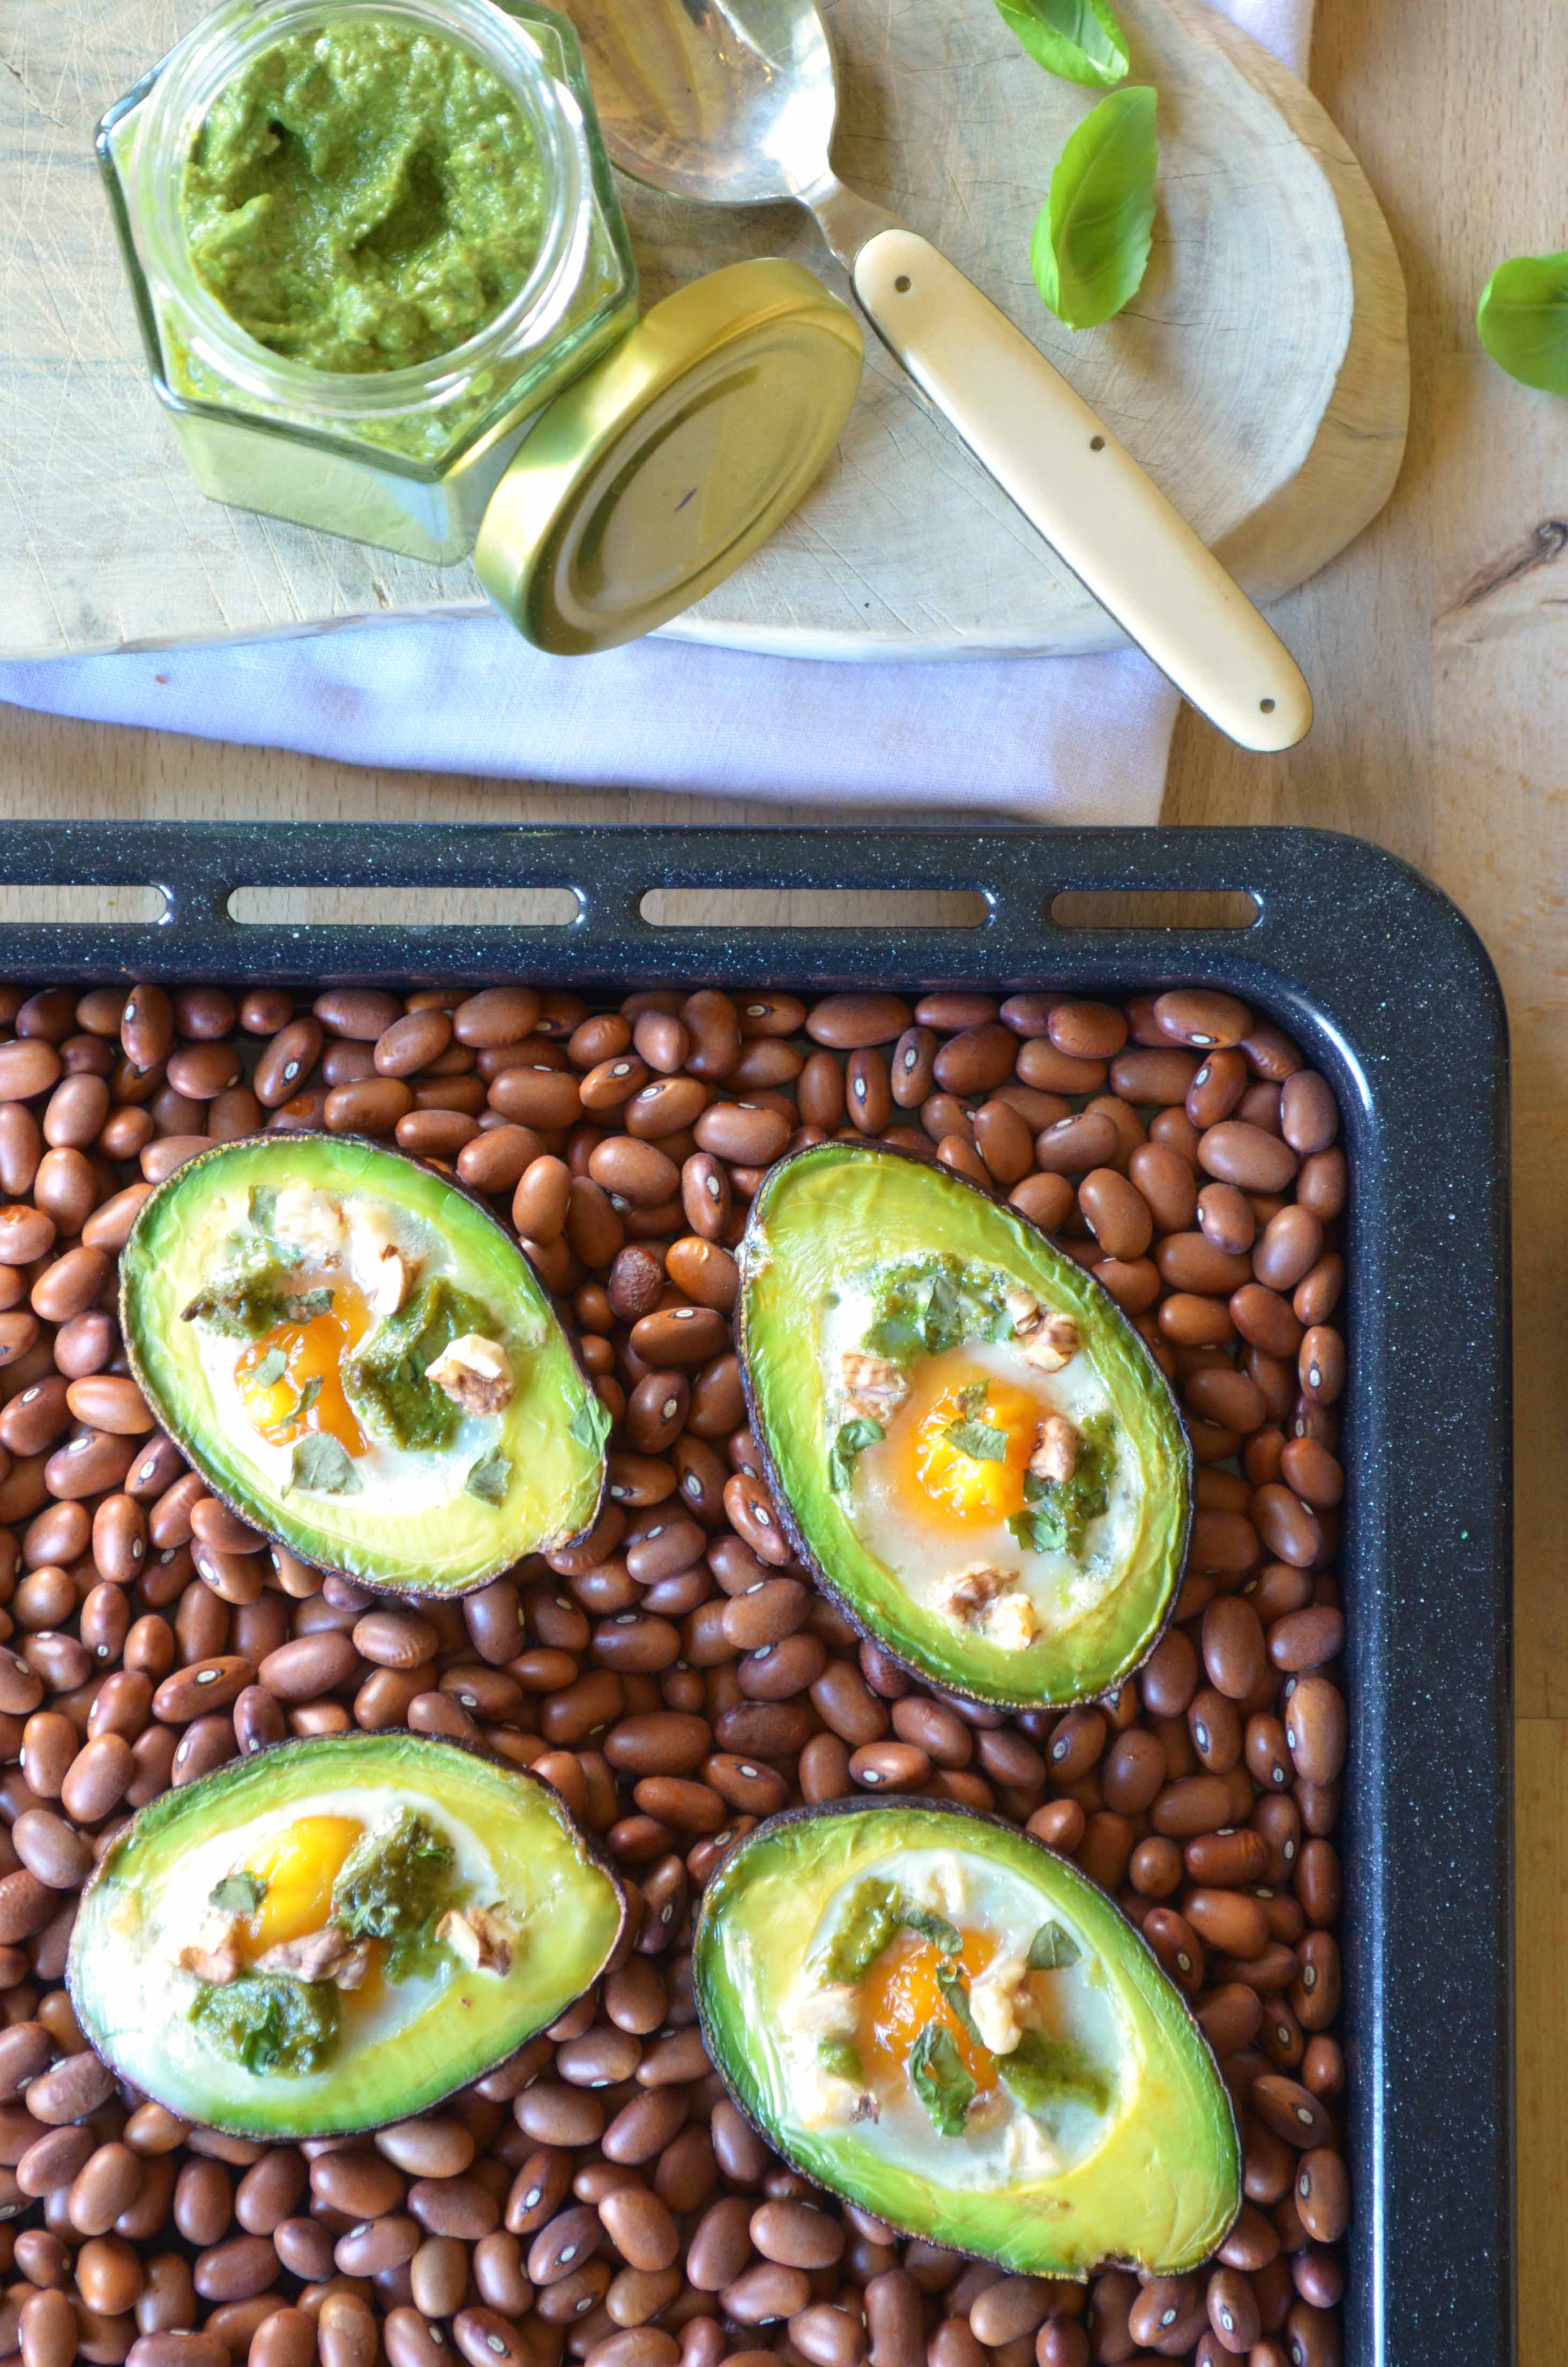 Avocado Boats with Eggs and Creamy Pesto